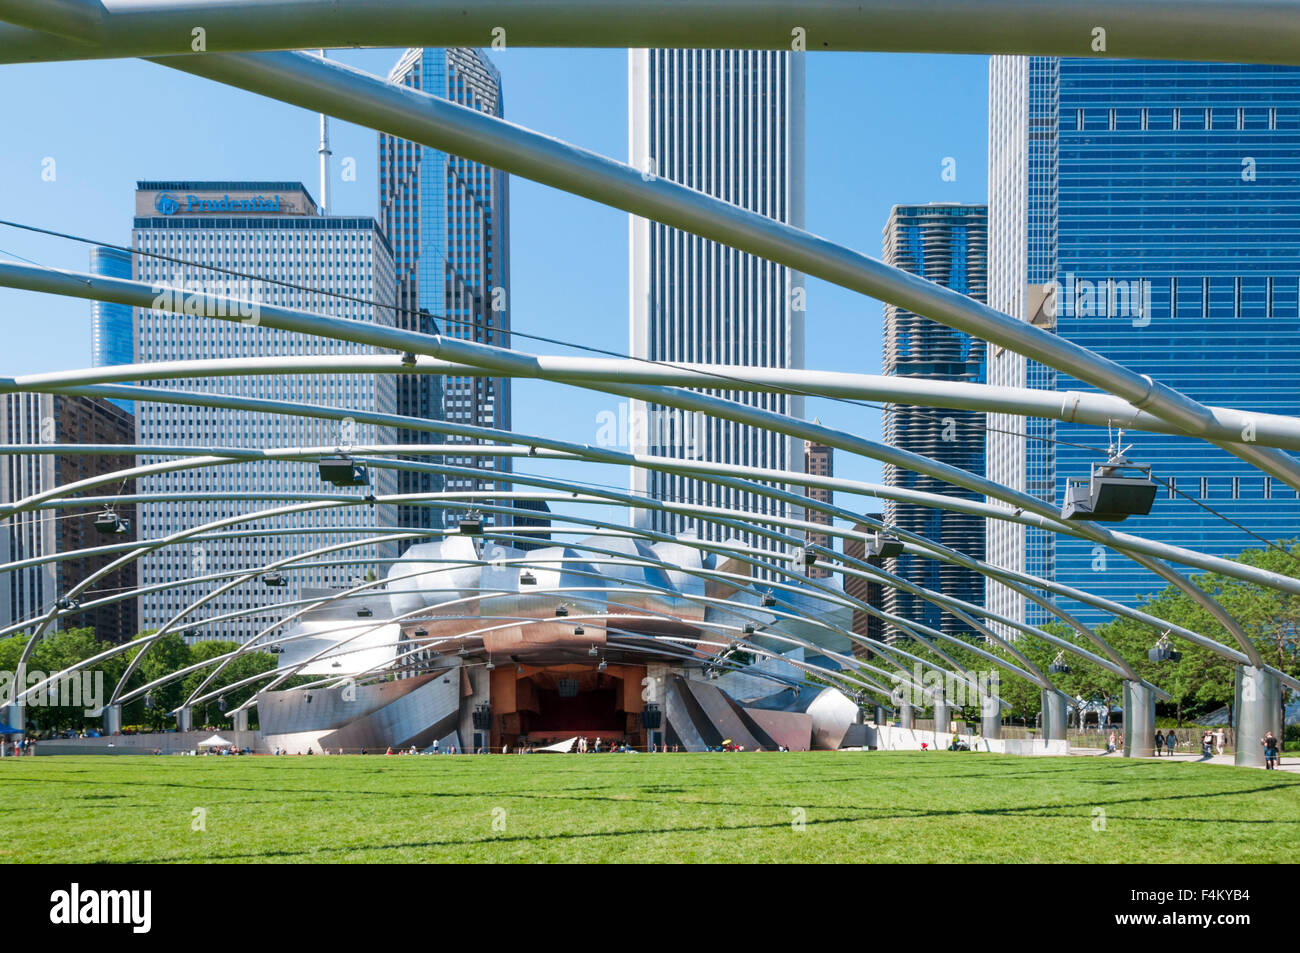 The Jay Pritzker Pavilion in Millennium Park, Chicago.  Designed by Frank Gehry. - Stock Image